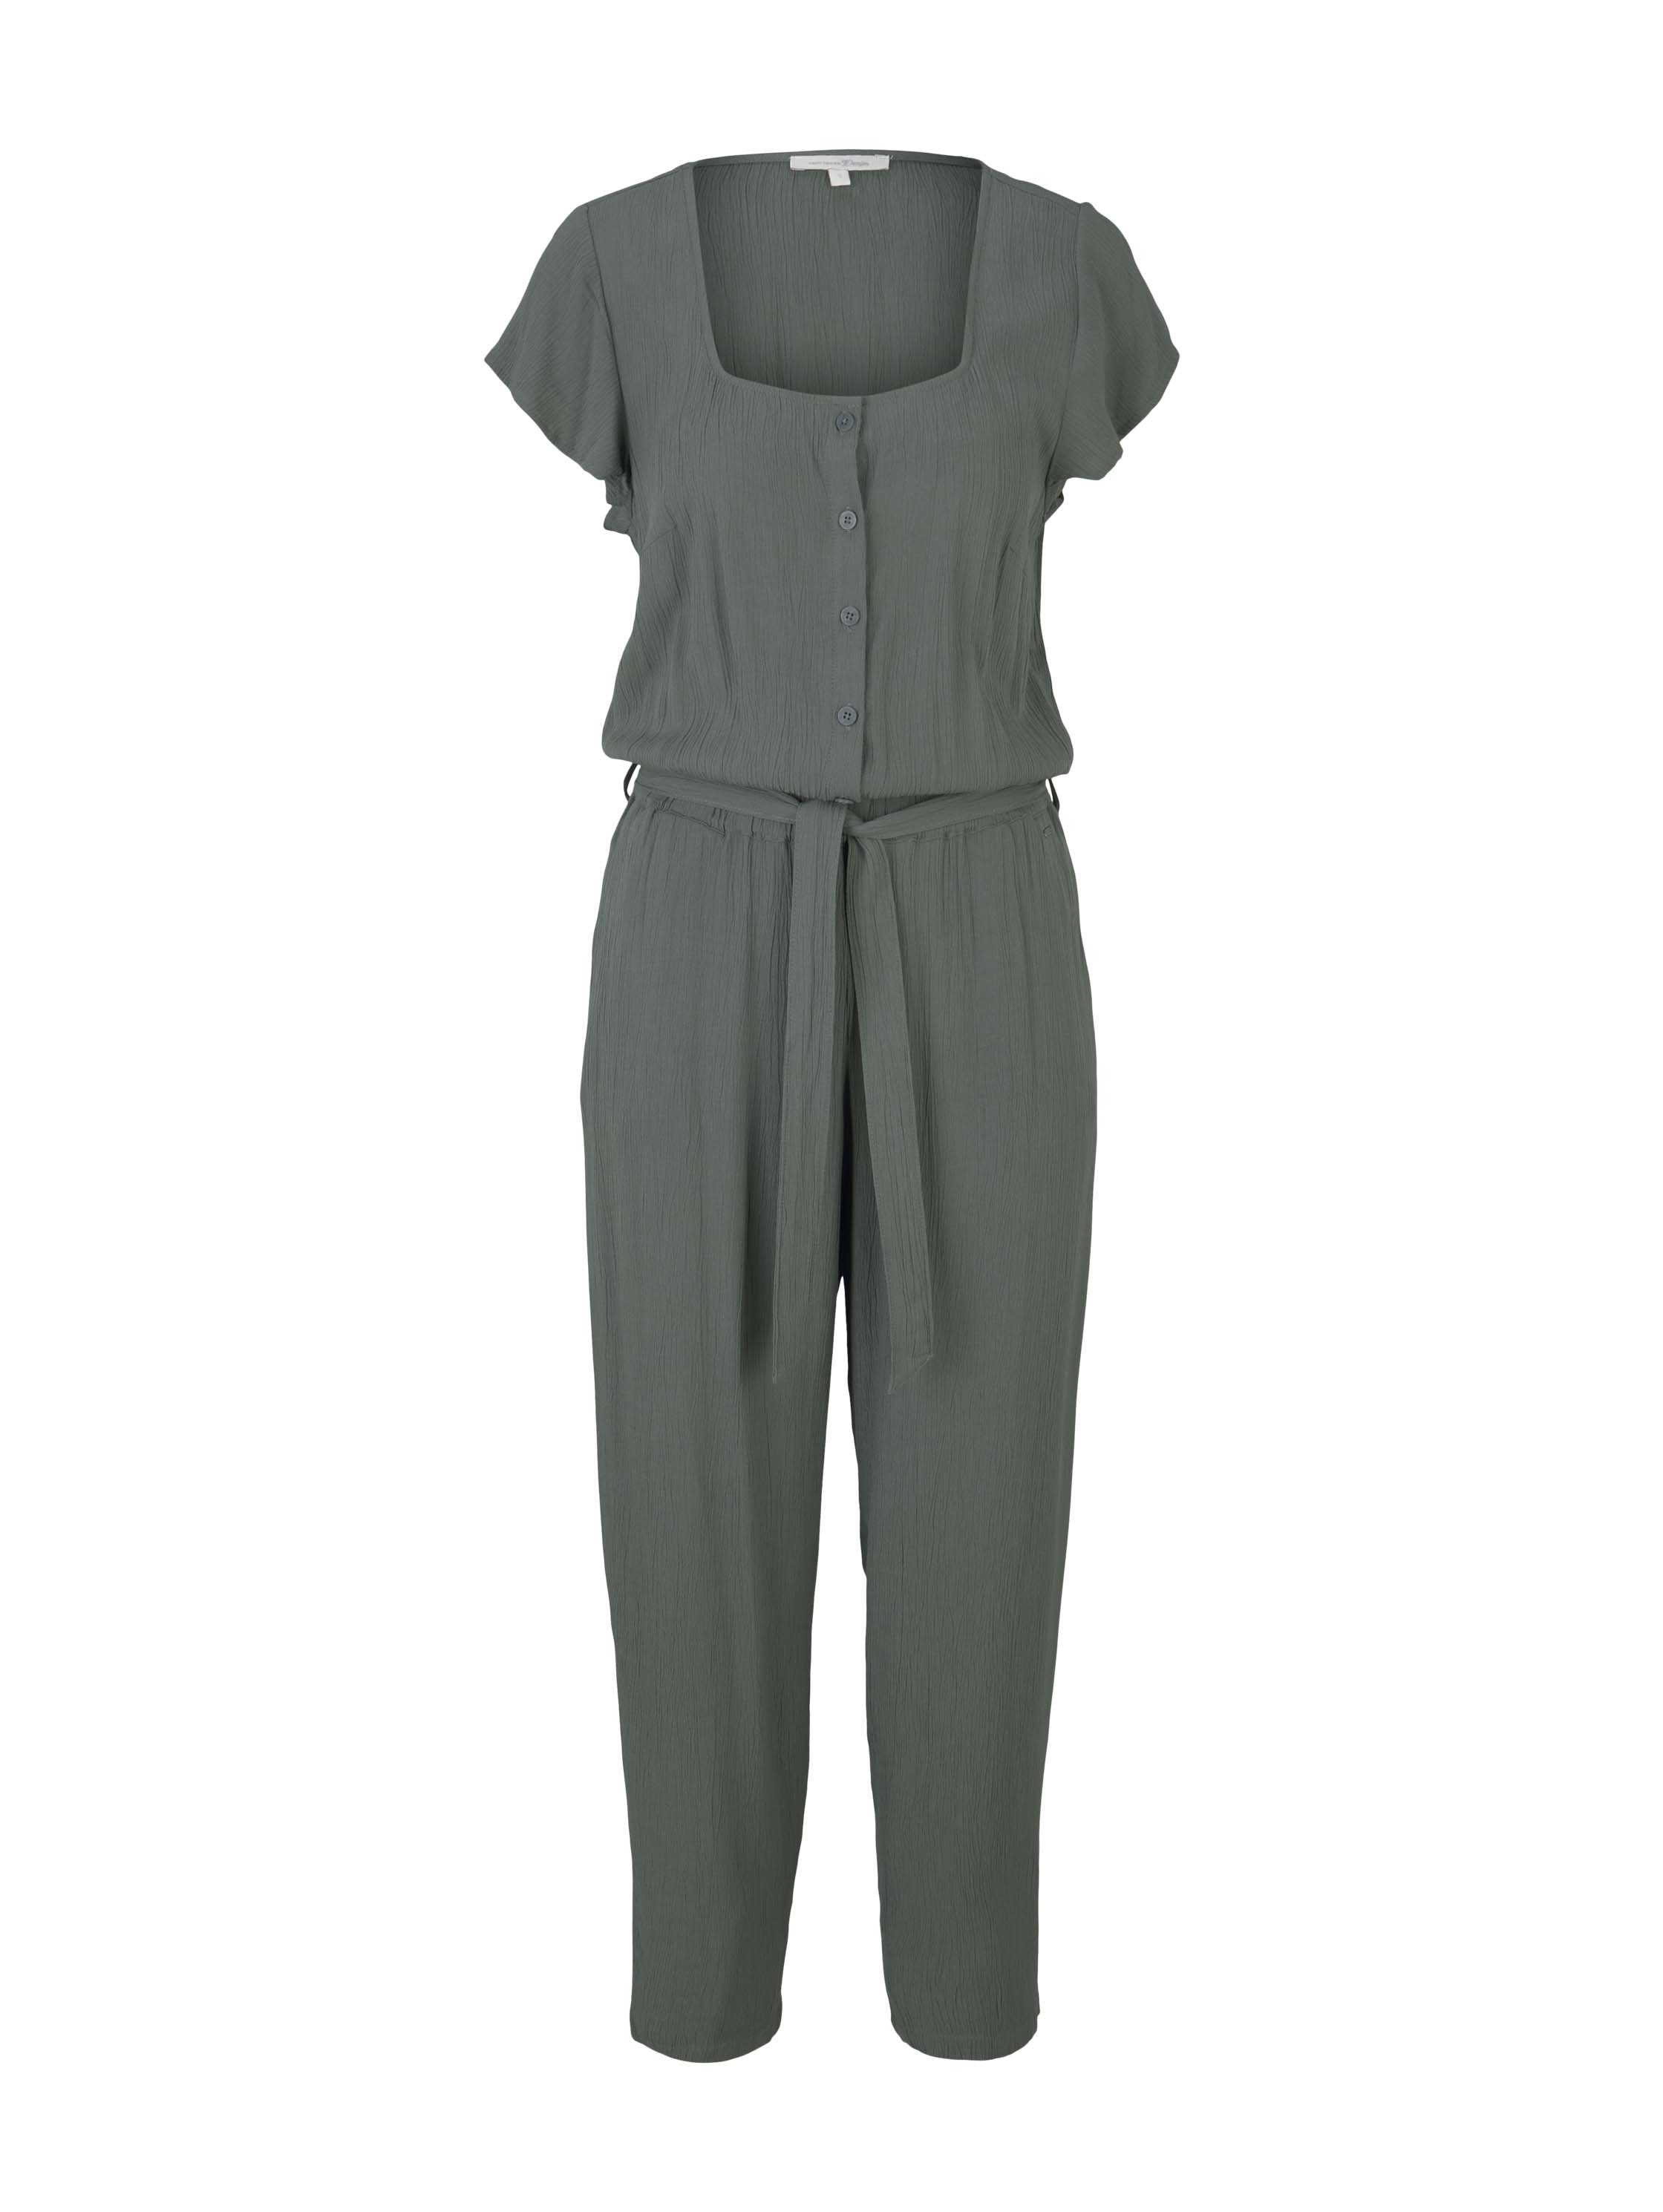 Crincled Jumpsuit, dusty pine green